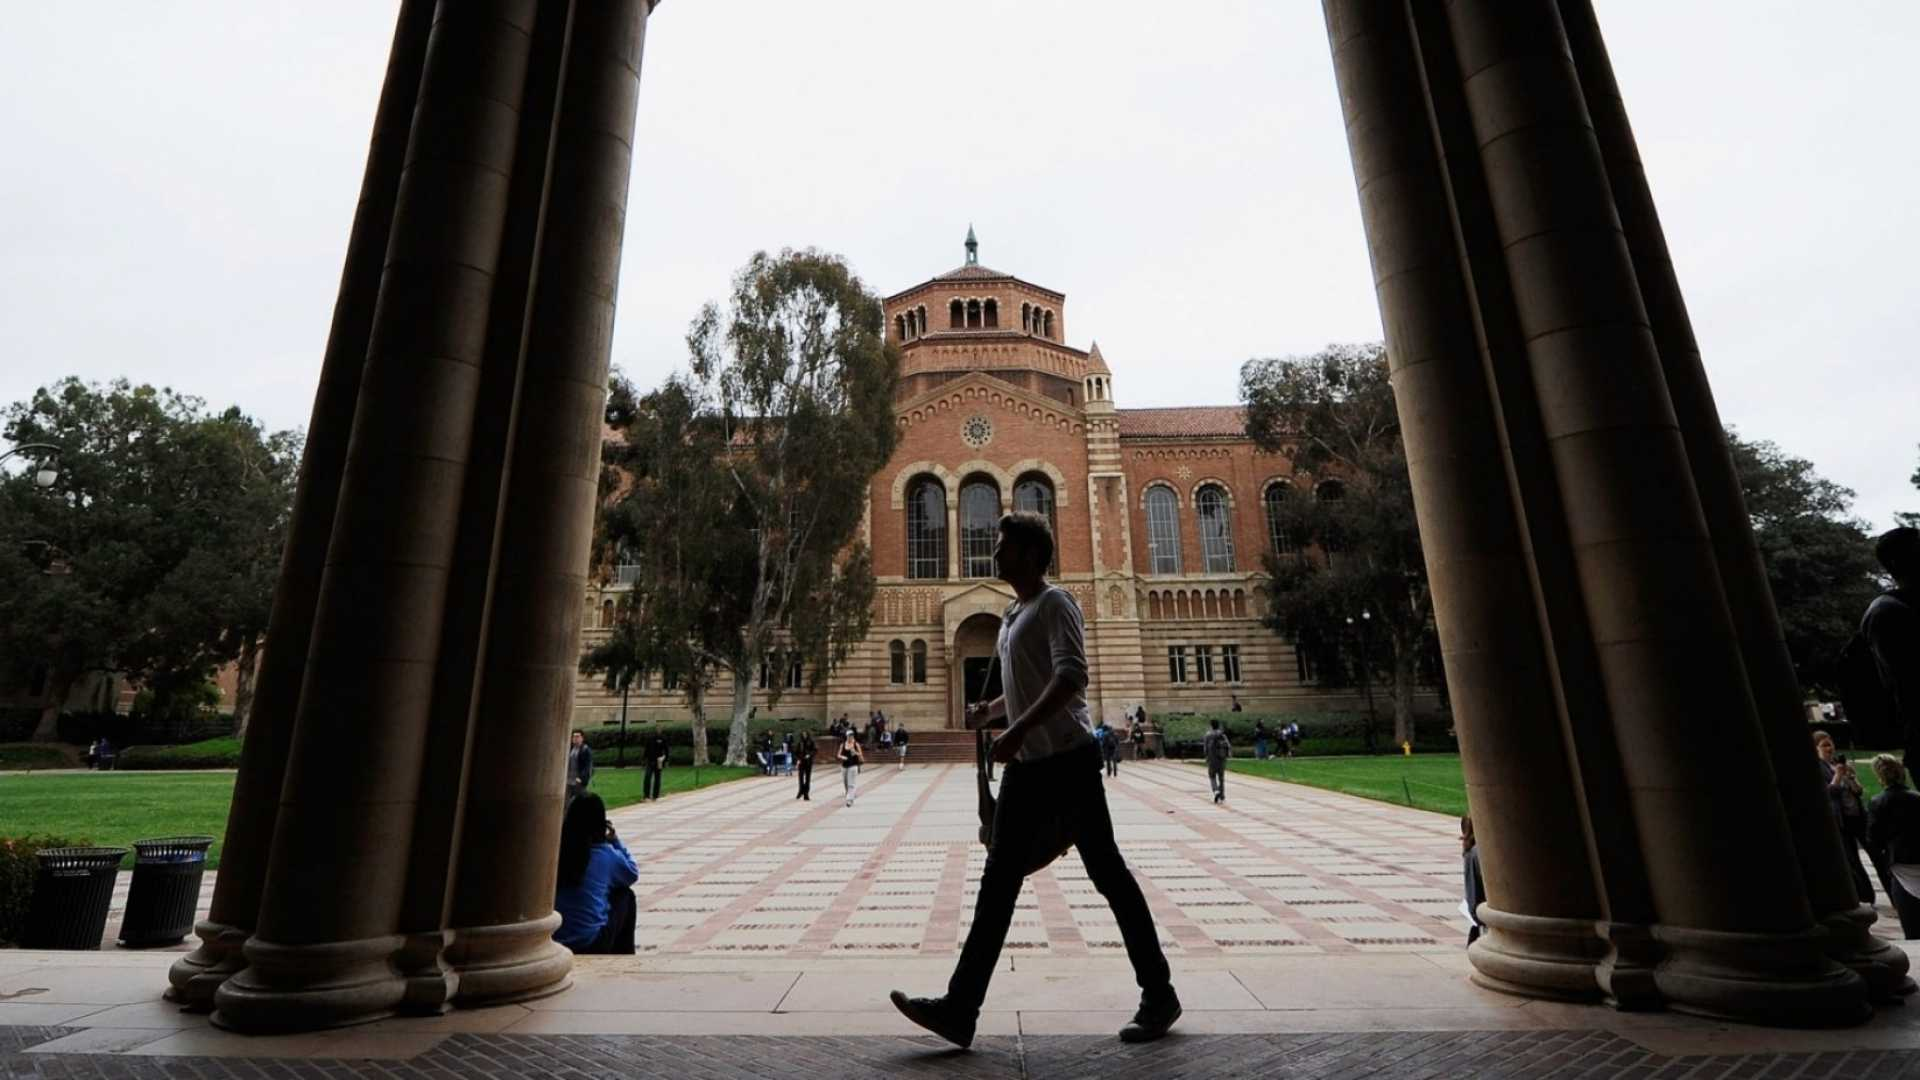 Ranked: Top 20 Business Schools Whose Graduates Earn Over $139,000